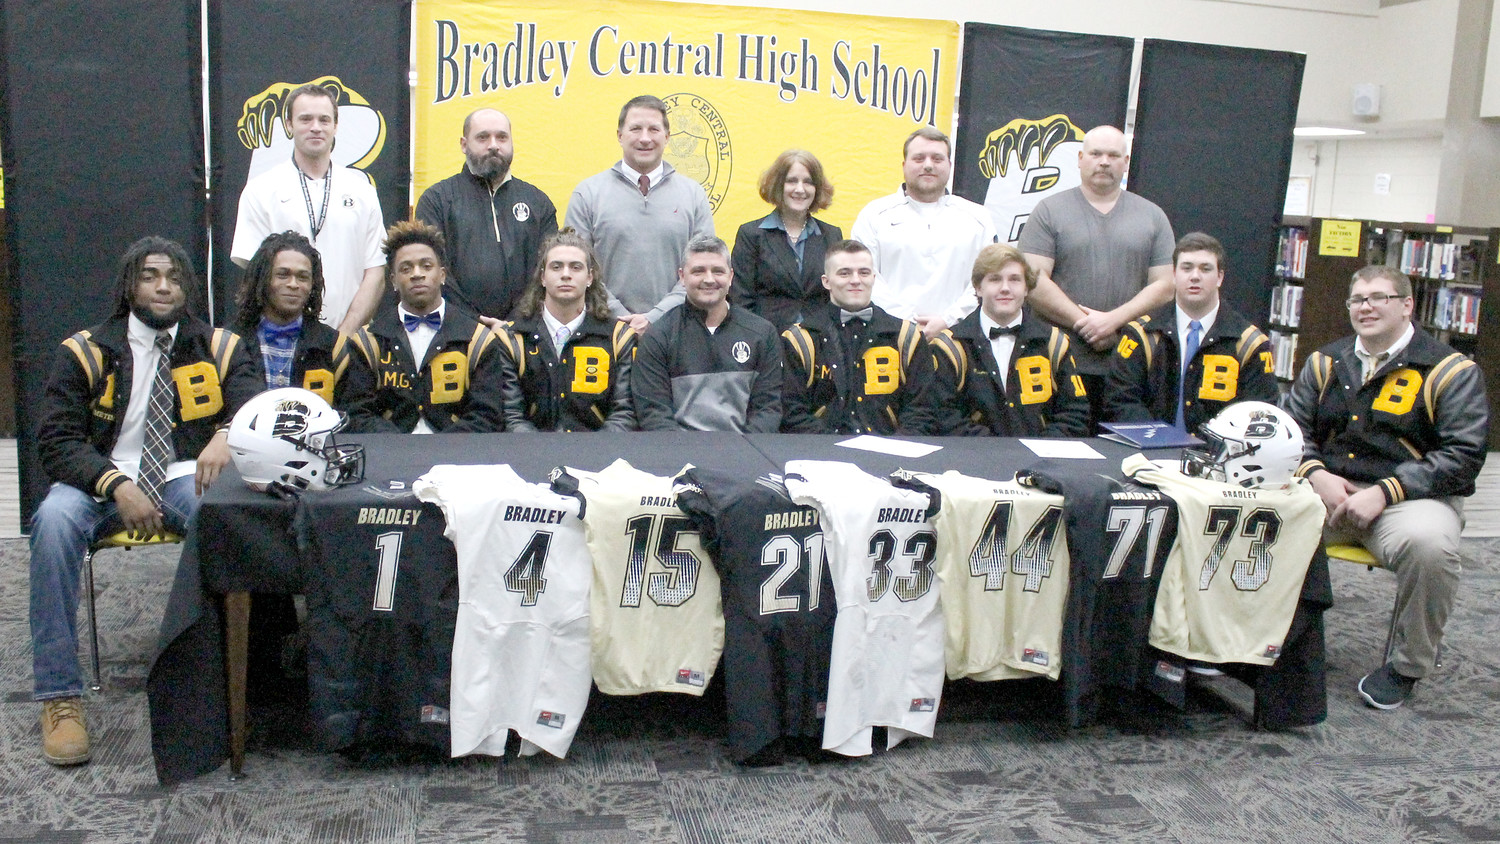 BRADLEY CENTRAL had a record eight football players officially announce their collegiate choices during Wednesday's National Signing Day ceremonies. Moving to the next level are, seated from left, Jay Person (Appalachian State), Jeffrey Brewer (Shorter), Lameric Tucker (UT-Chattanooga), Jordan McIllwain (Shorter), Bear head coach Damon Floyd, Kevin Gentry (Maryville), Adam Mullis (Maryville), Chris Cash (Air Force) and Tyler Collier (Thomas More). Helping them celebrate with family and friends were, standing from left, BCHS assistant coaches Isaac Robinson, David Phillips, BCHS Principal Todd Shoemaker, BCS Director of Schools Linda Cash, and Bear assistants Matt Moody and Blake Gideon.